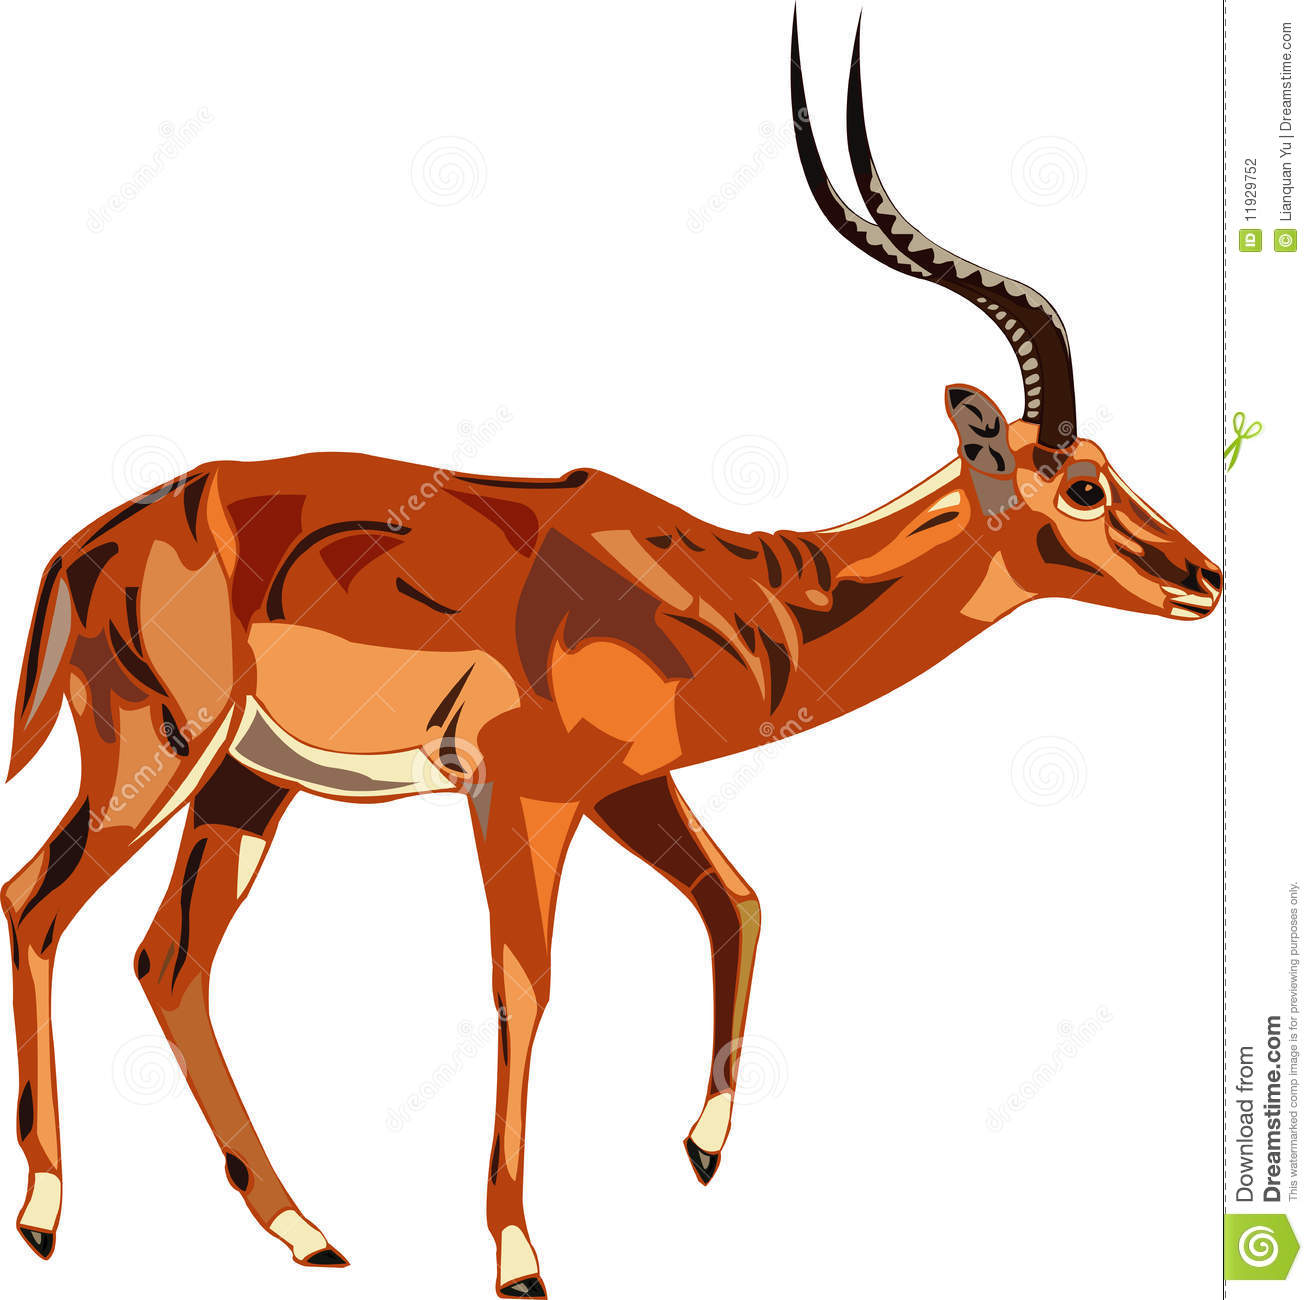 Antelope 20clipart.